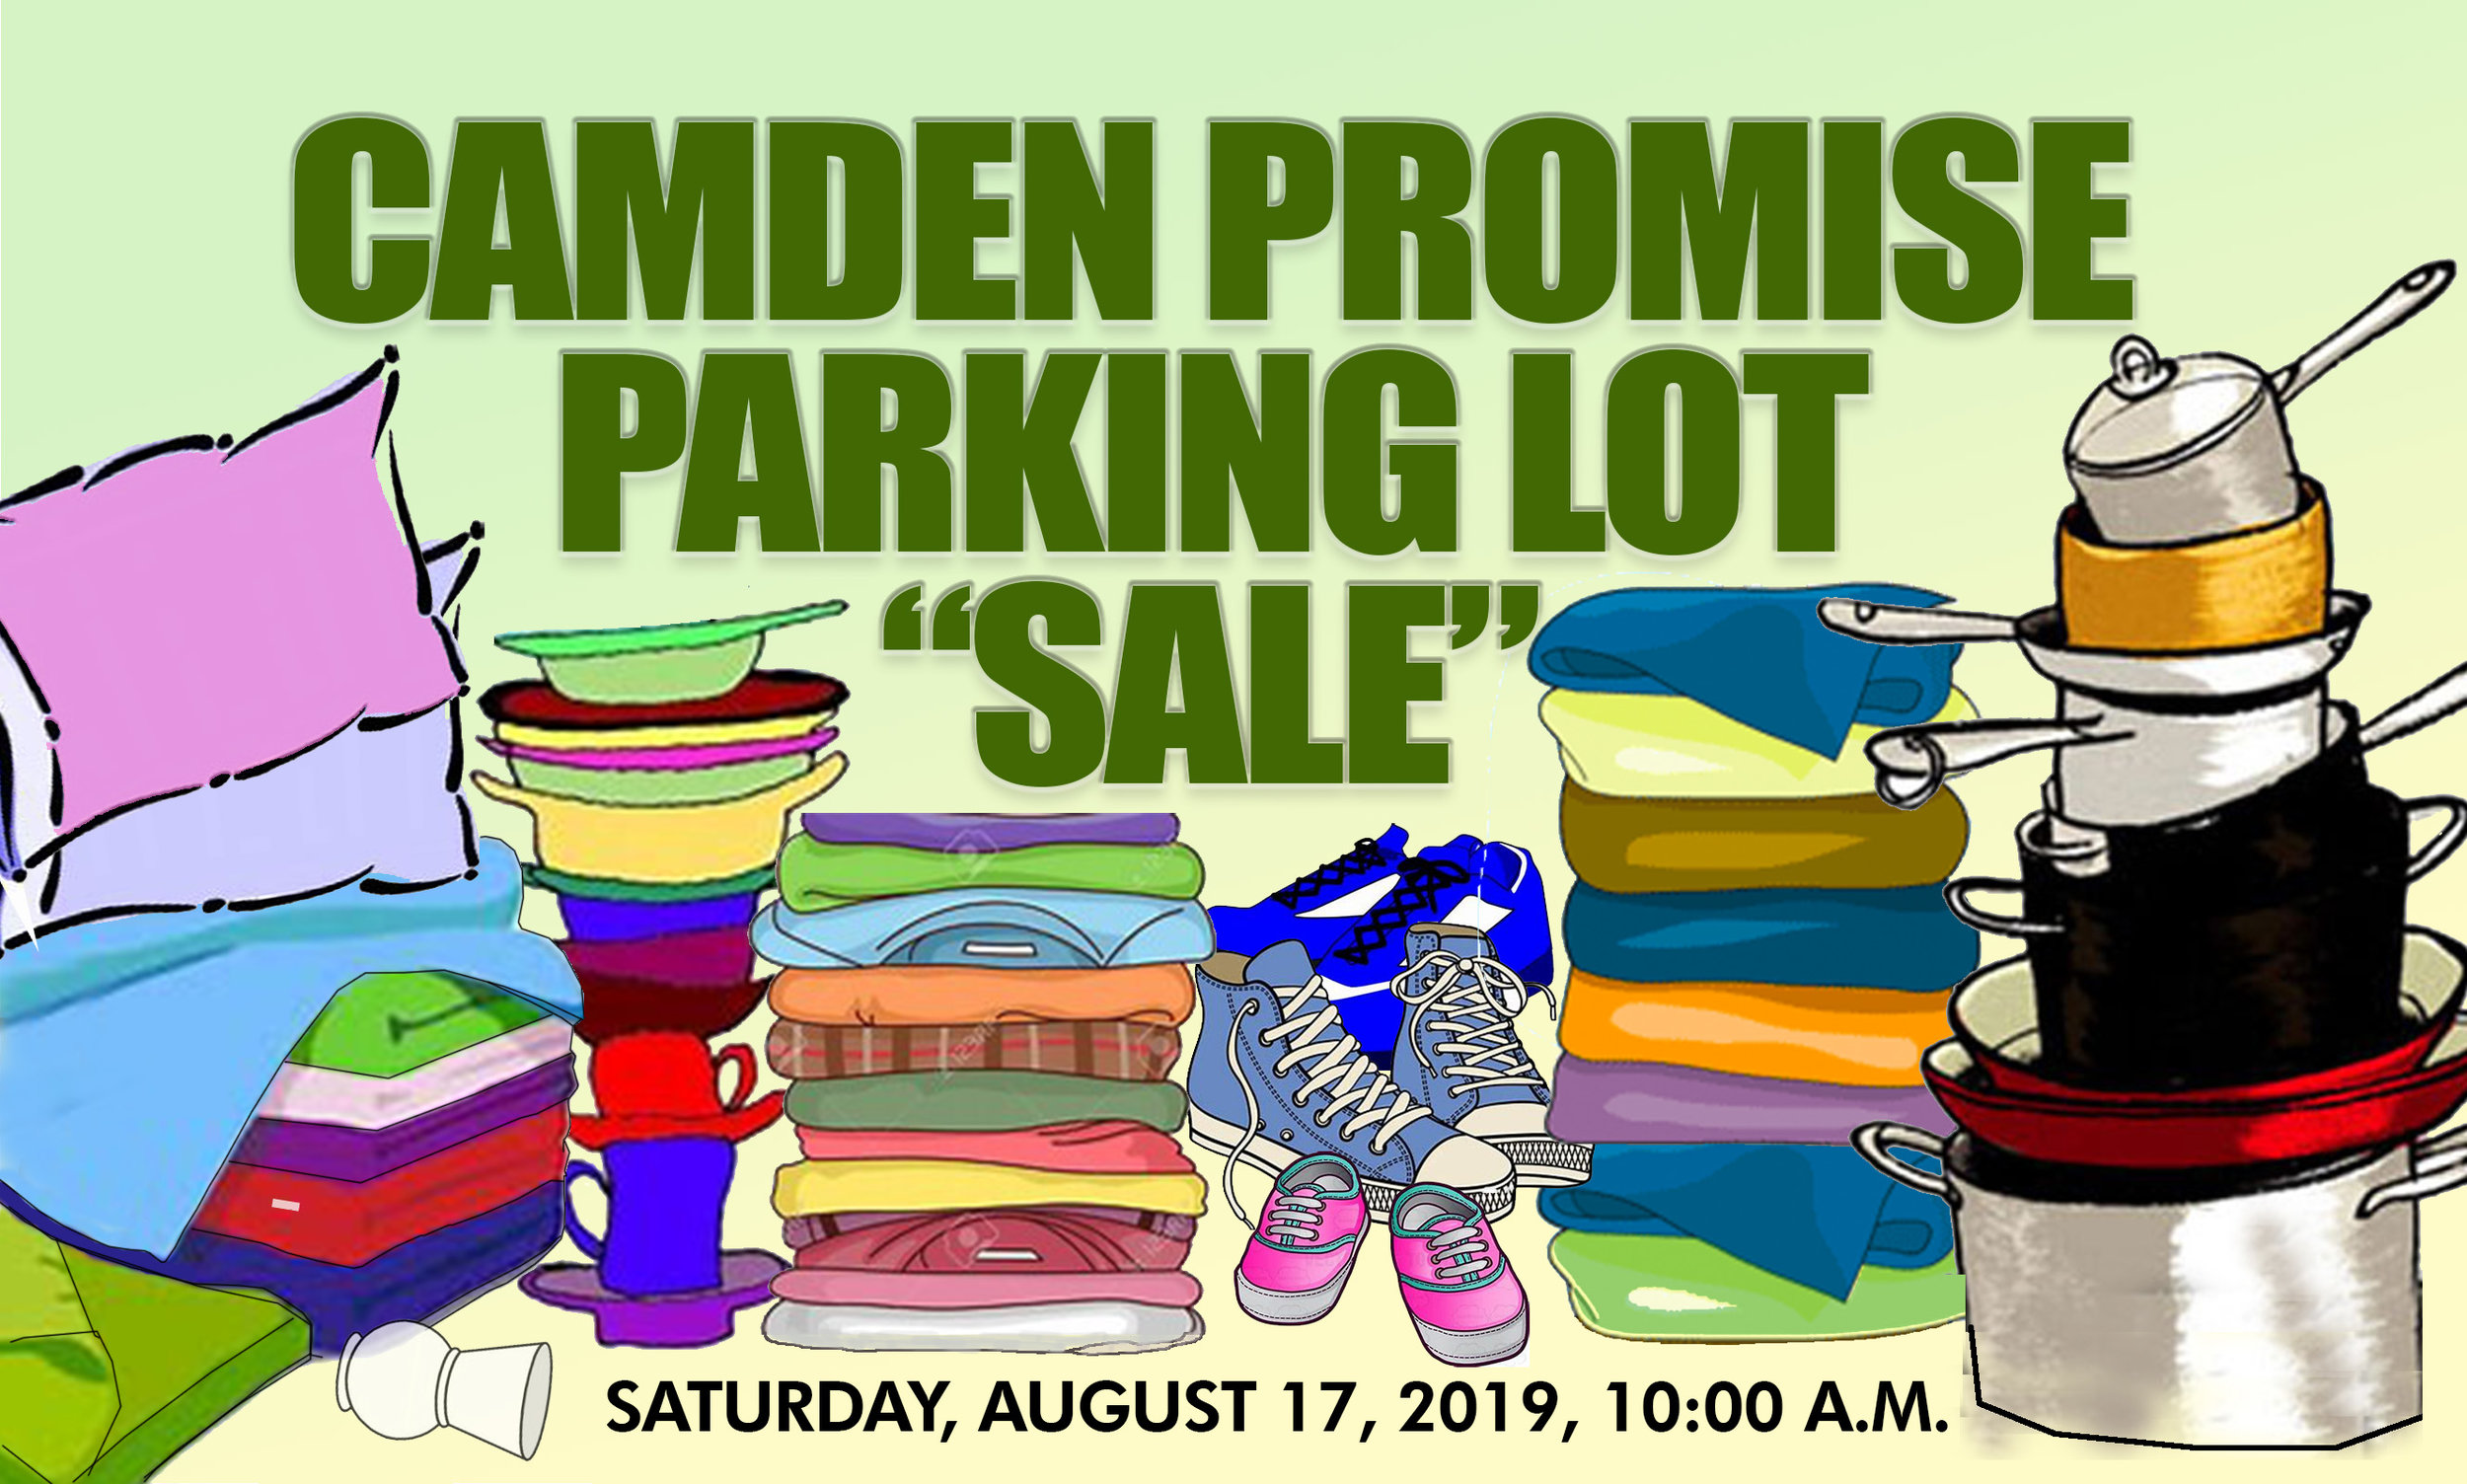 Camden Parking Lot Sale.jpg